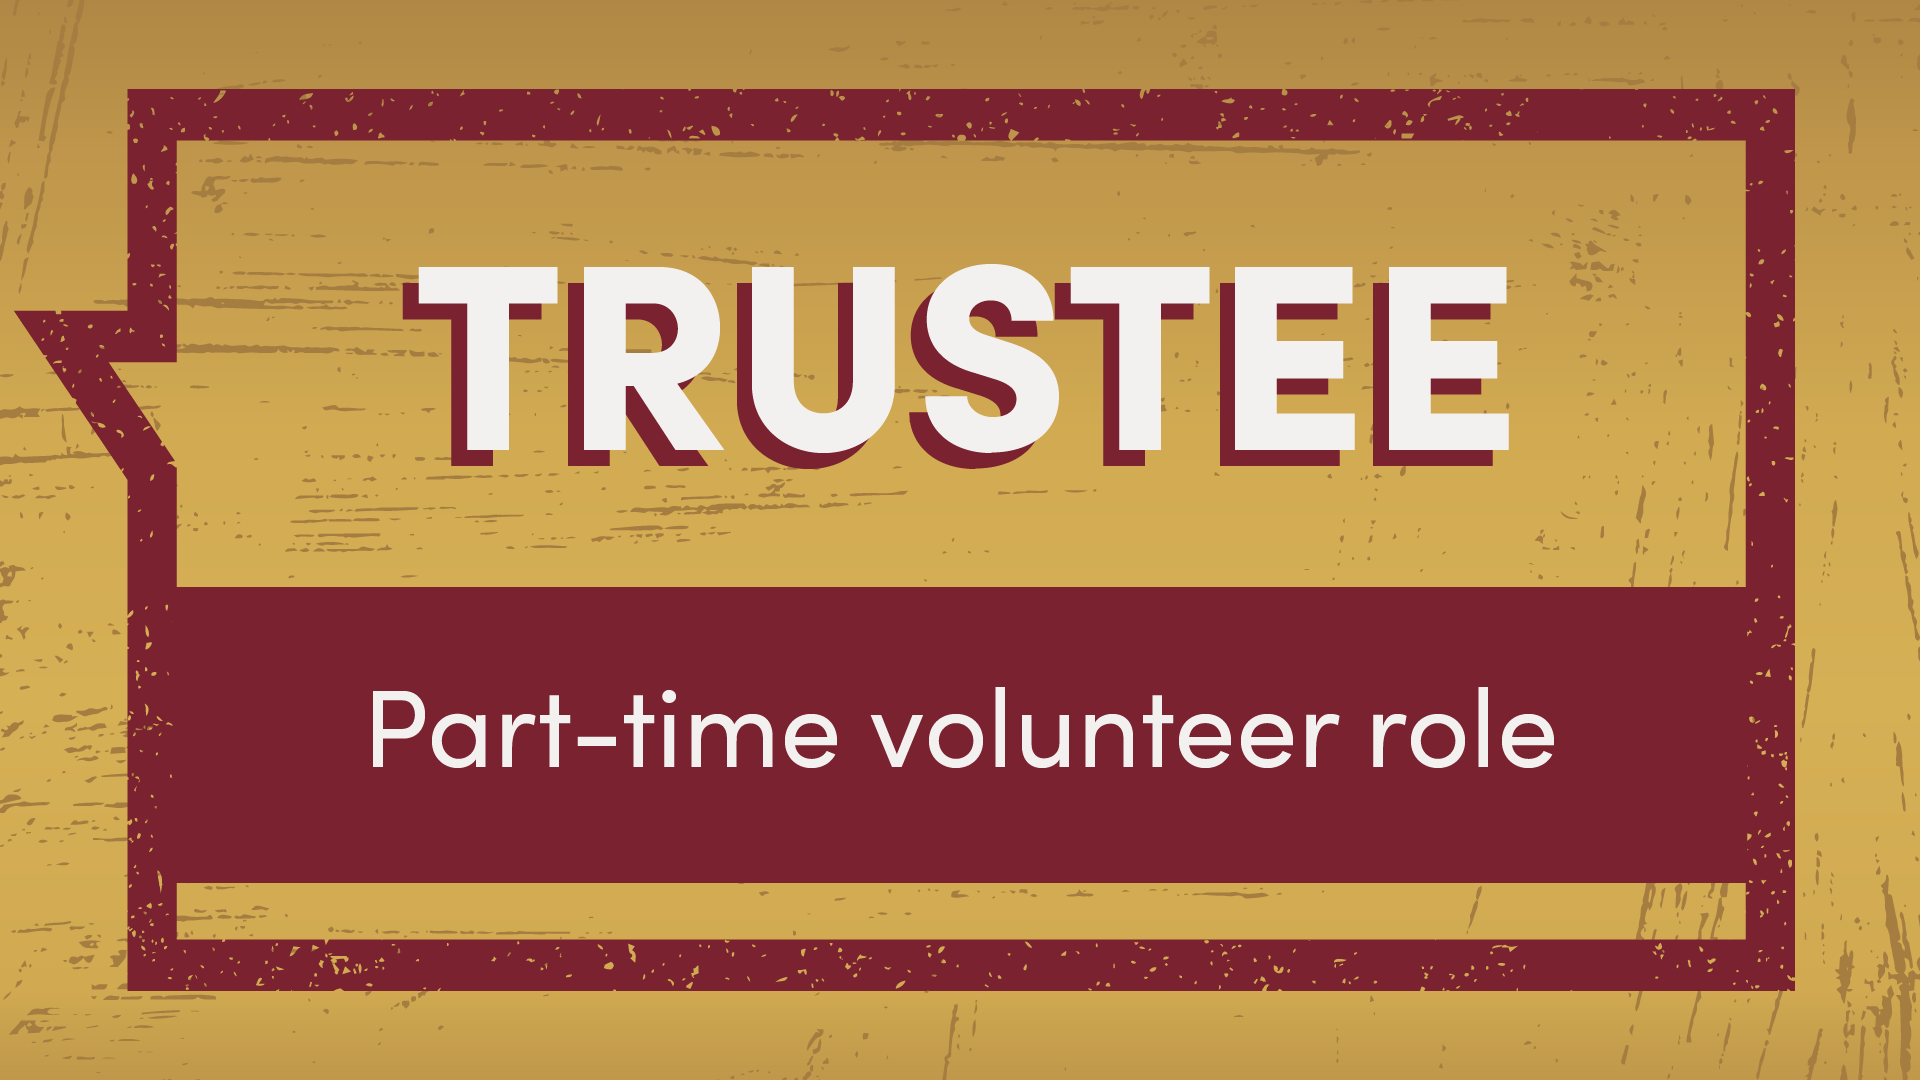 Trustee part-time volunteer role